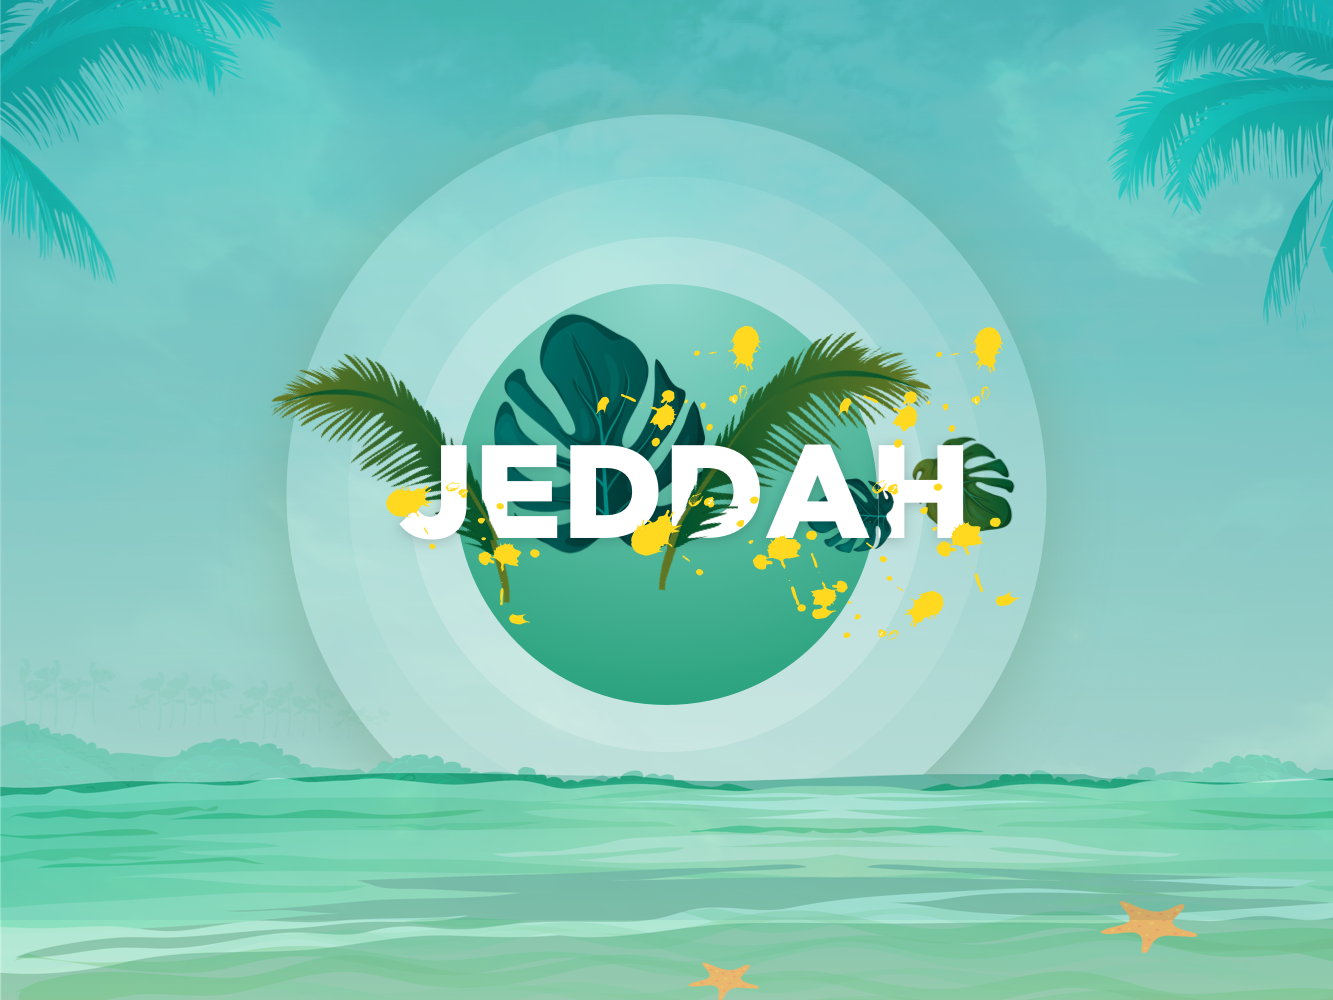 Jeddah Summer leaf green fun beach saudi jeddah summer